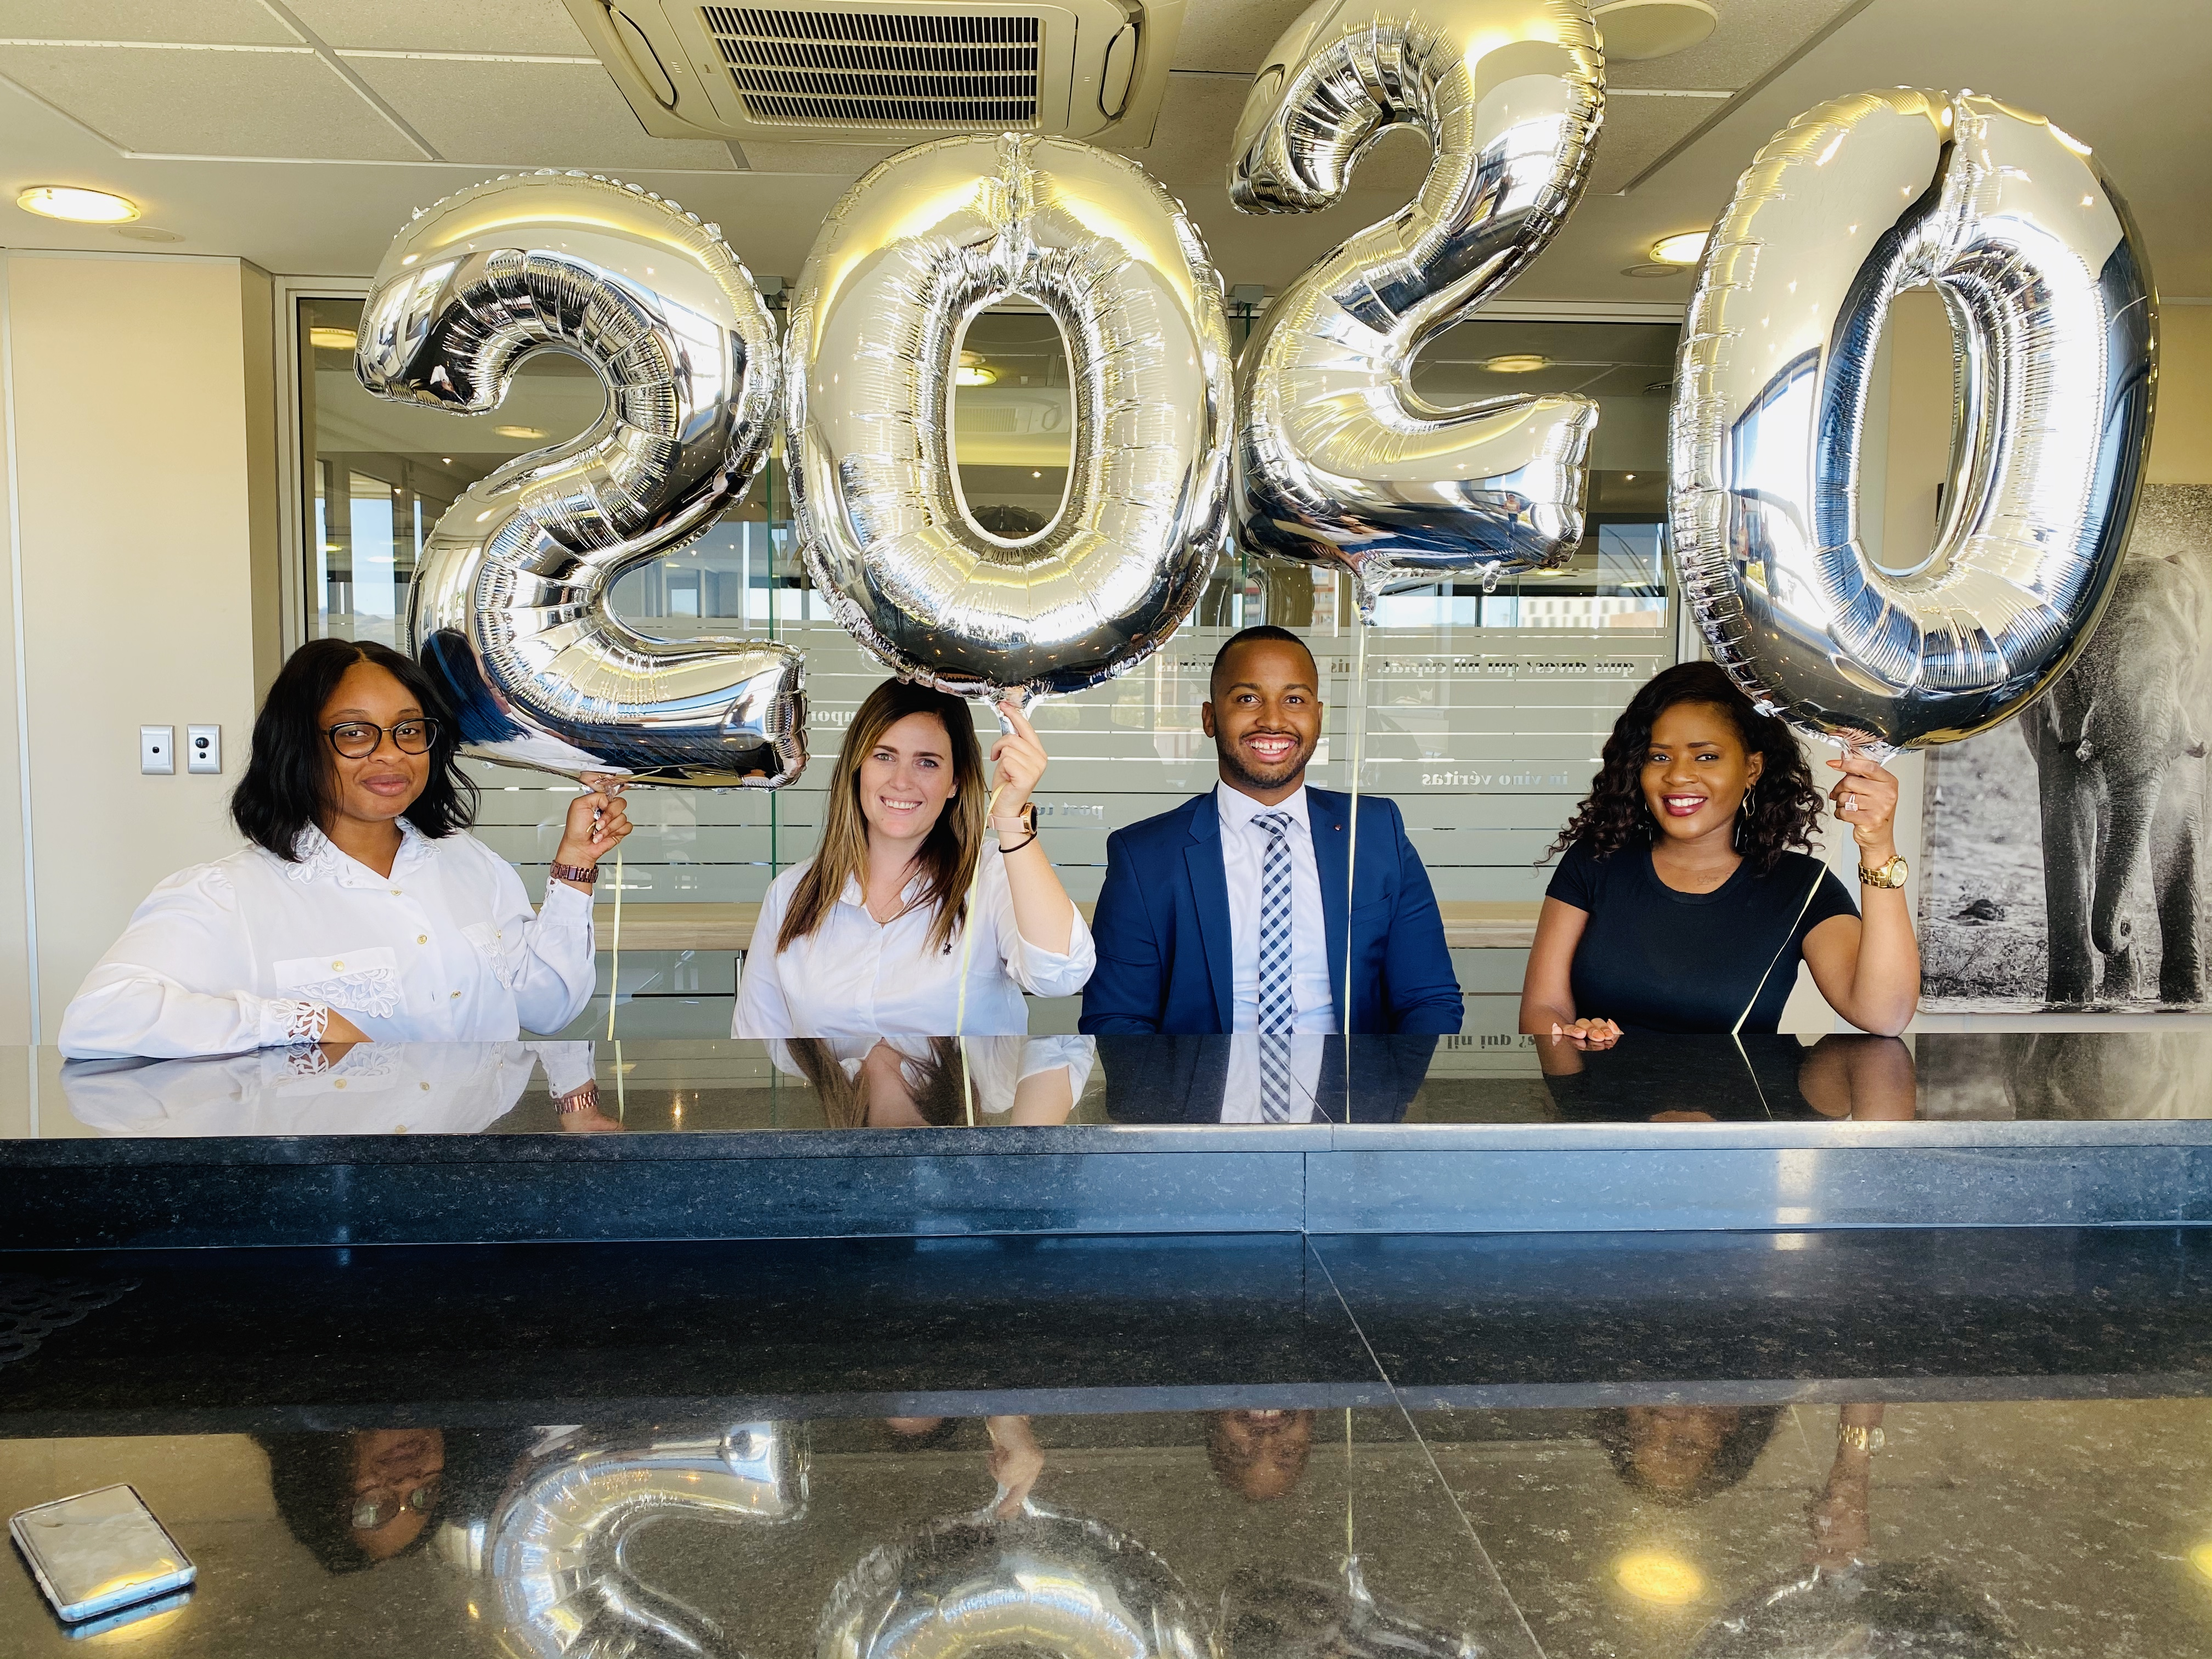 INTRODUCING THE 2020 CANDIDATE LEGAL PRACTITIONERS